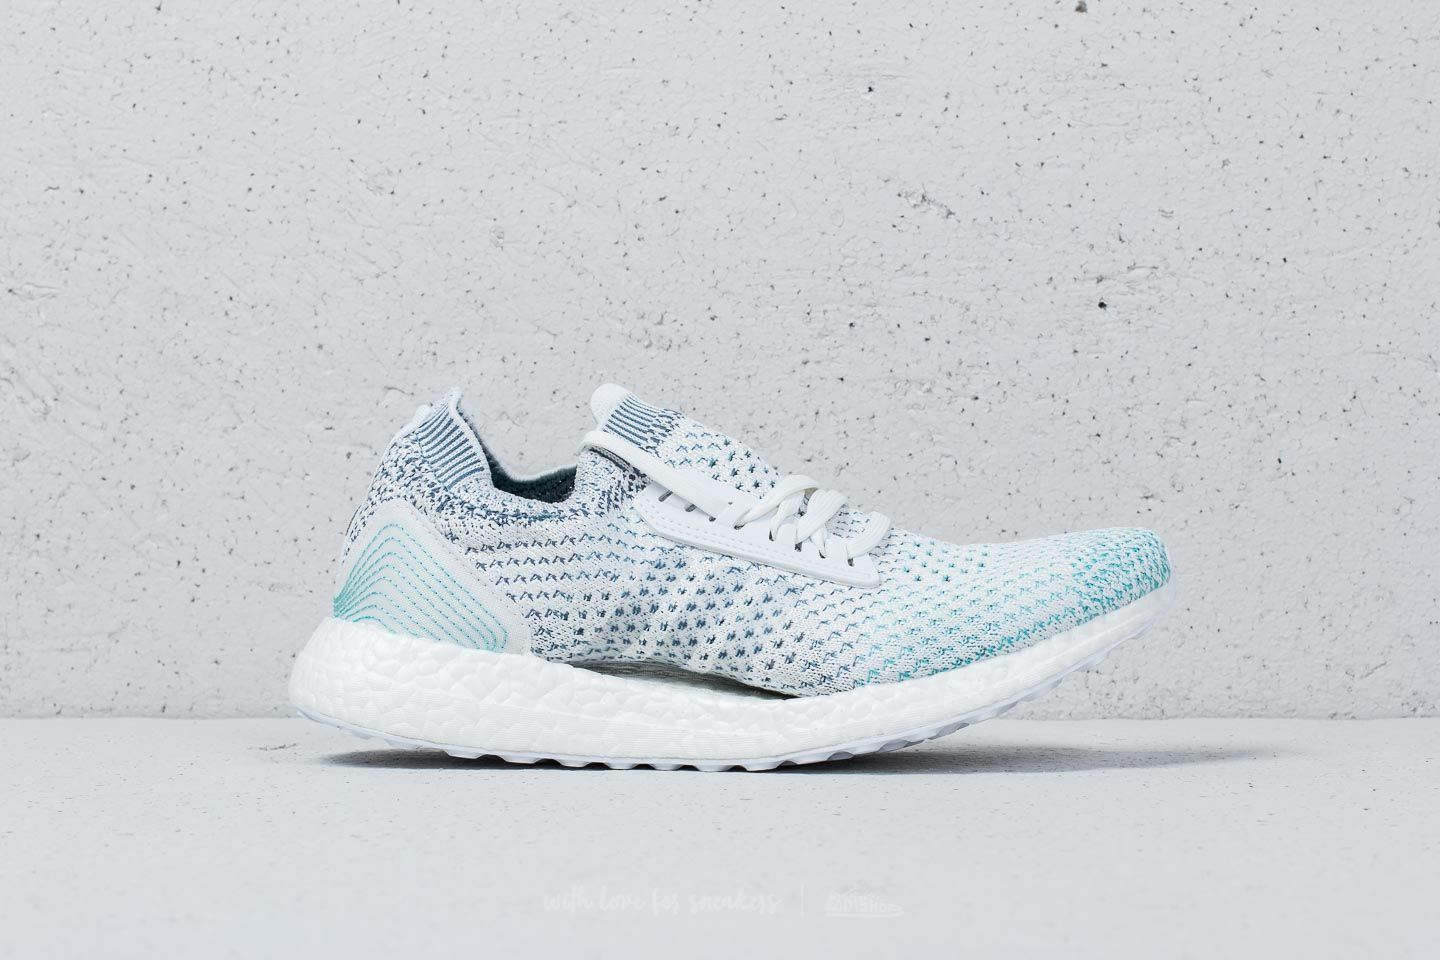 buy popular 12c53 ebd61 adidas Ultraboost x Parley LTD Ftw White/ Ftw White/ Blue ...